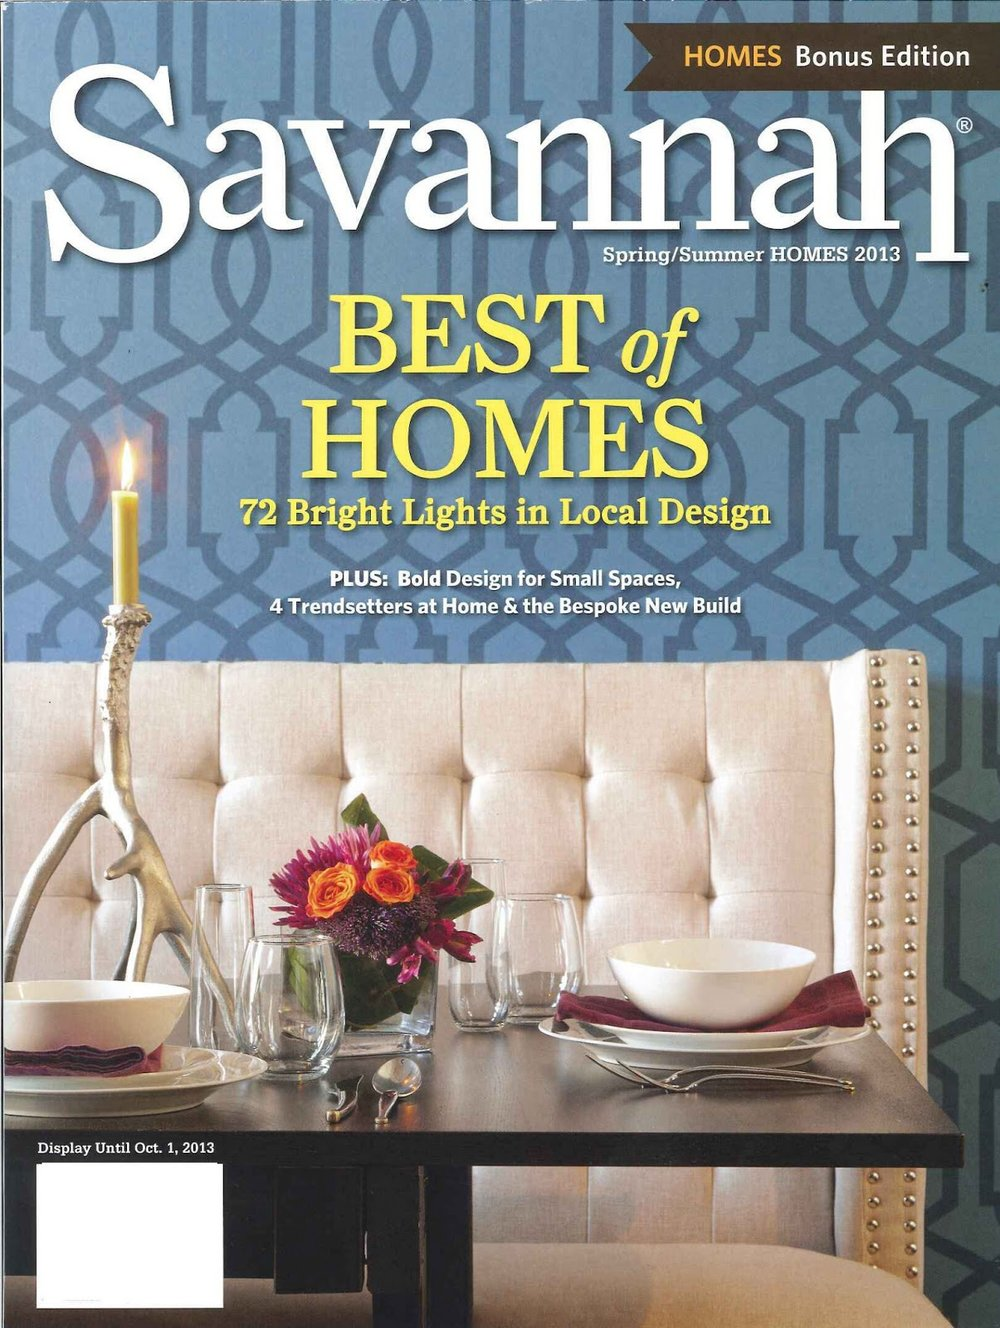 Savannah May '13 cover.jpg